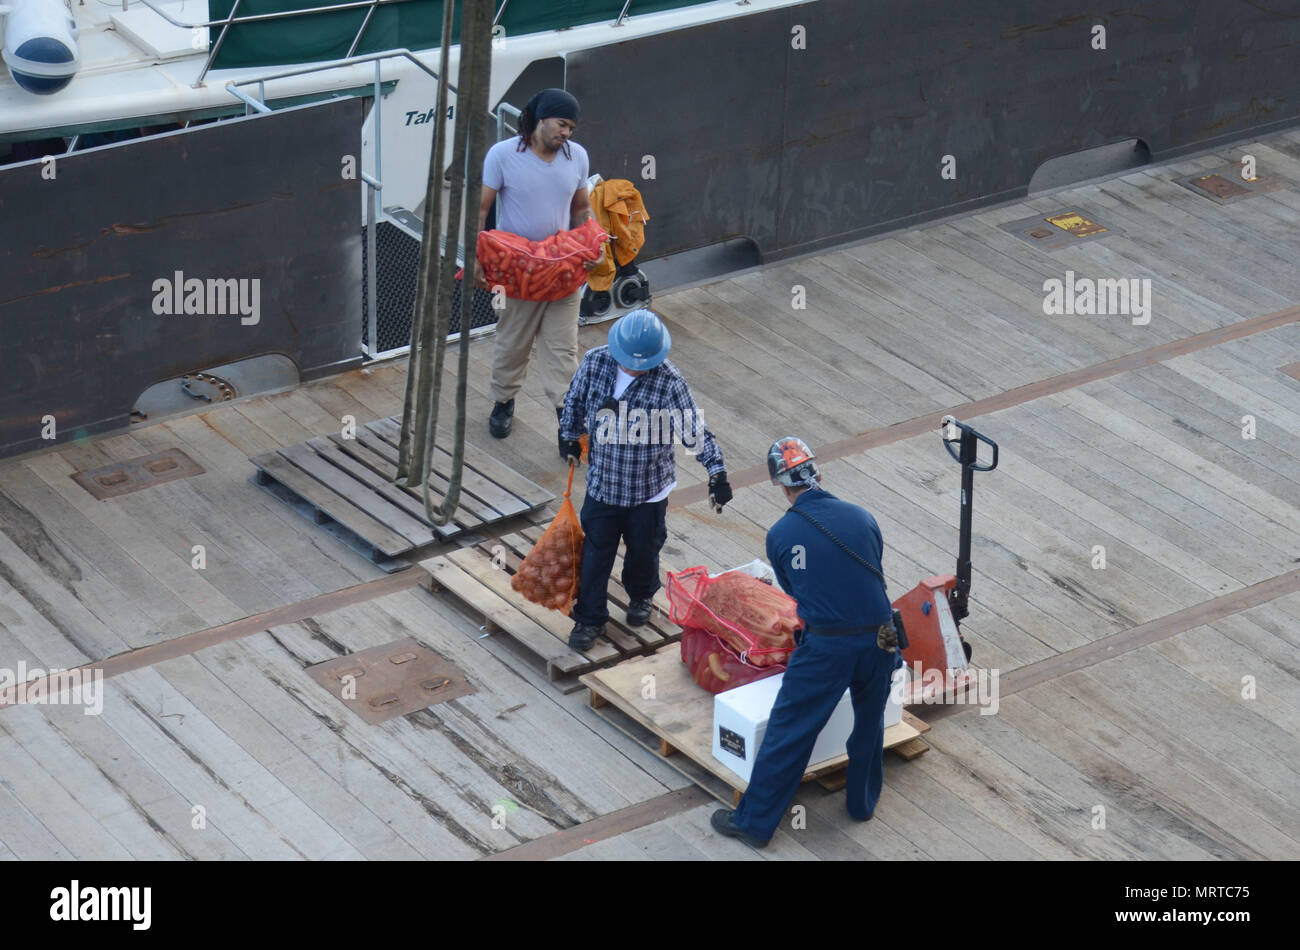 170706-N-WJ640-007 NOUMEA, New Caledonia (July 06, 2017) Civilian Mariners onboard USNS Sacagawea (T-AKE 2), onload stores and supplies off shore Noumea, New Caledonia in support of Koa Moana 17, July 6. Koa Moana 17 is designed to improve theater security, and conduct law enforcement and infantry training in the Pacific region in order to enhance interoperability with partner nations. (U.S. Navy photo by Mass Communication Specialist 3rd Class Madailein Abbott) Stock Photo